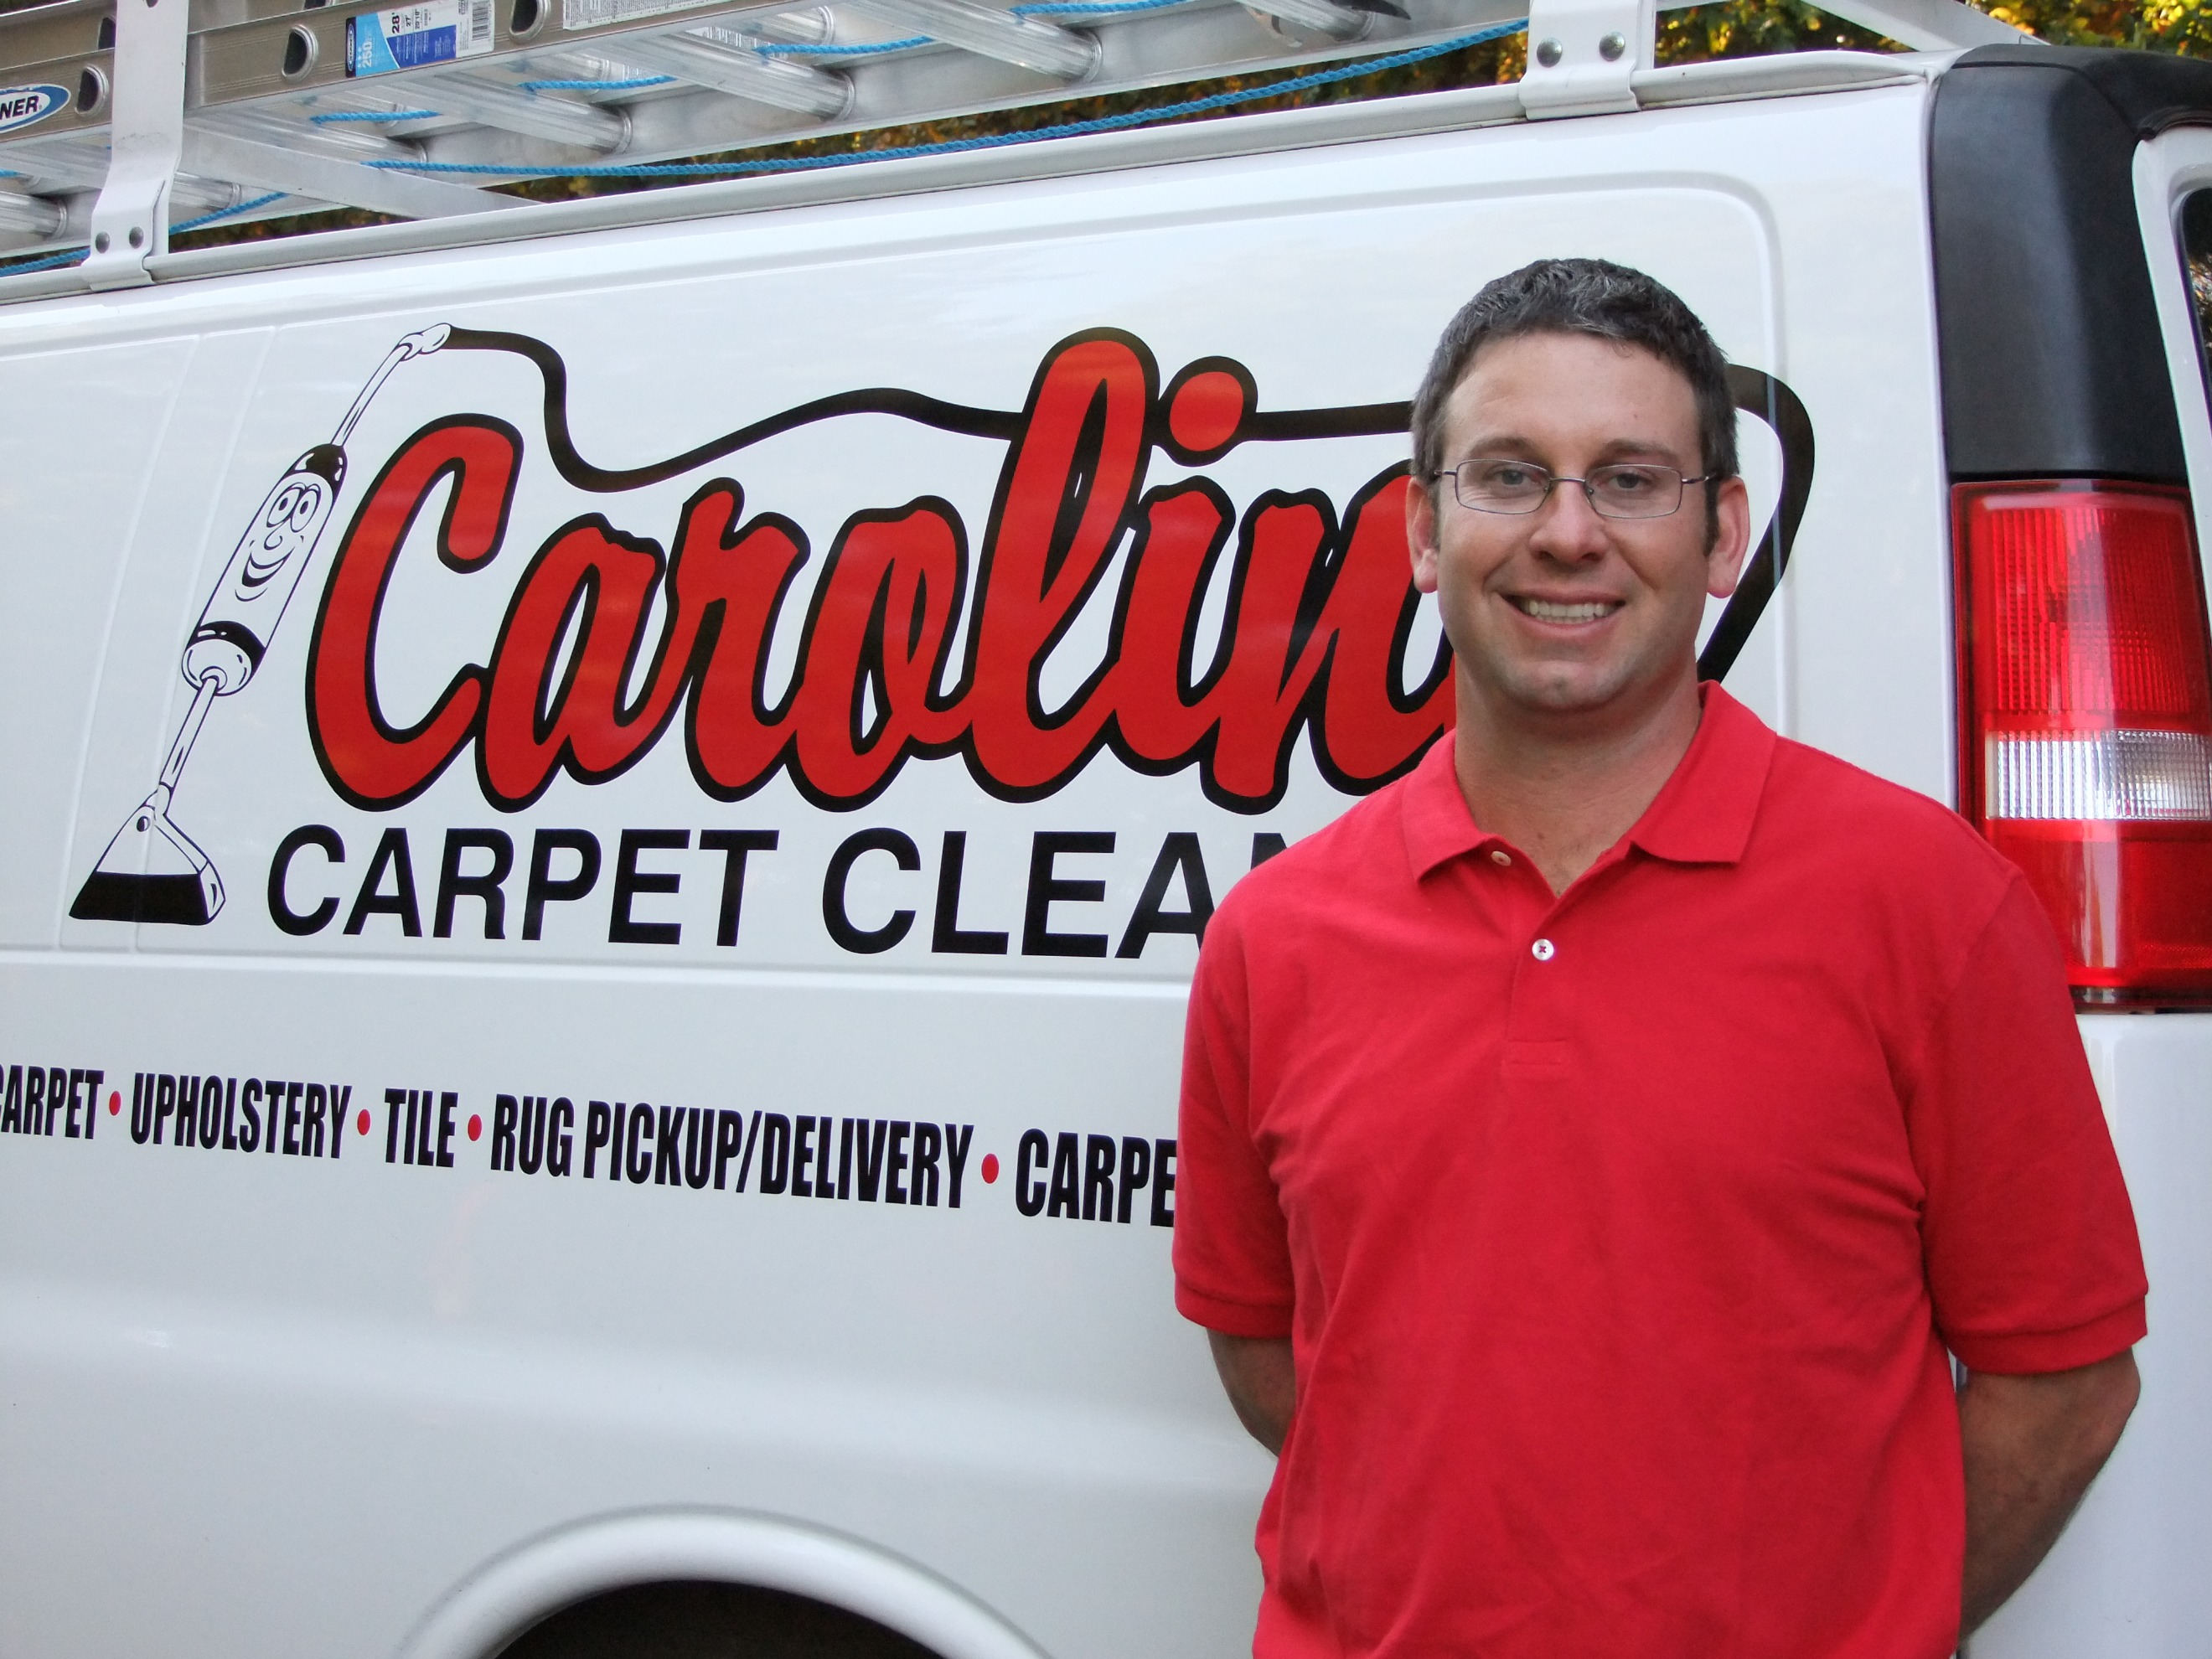 Charlotte and Cornelius Carpet Cleaning Services